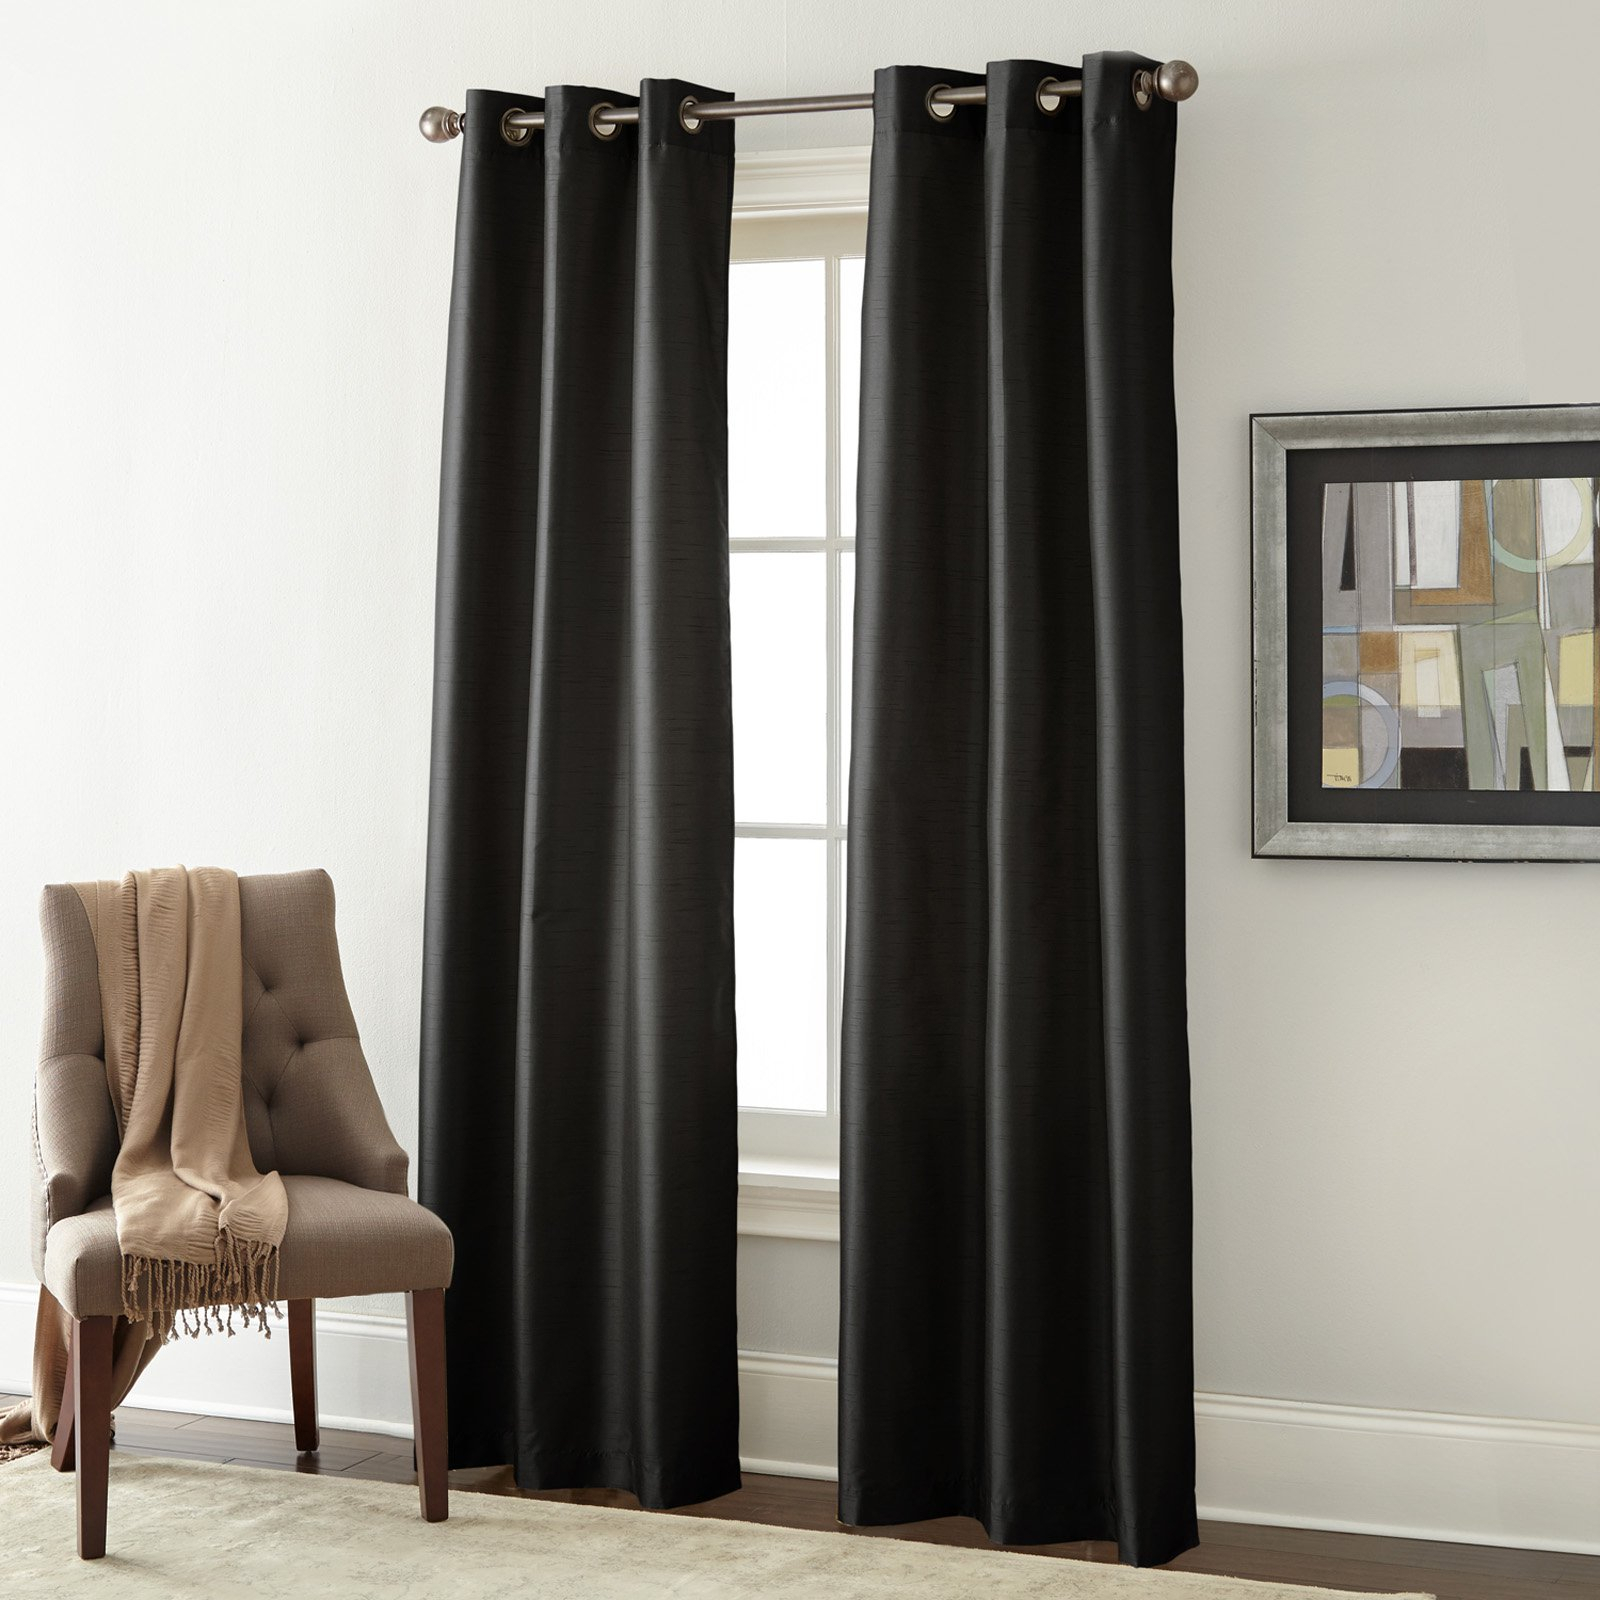 Home Essentials Solid Blackout Grommet Panel Curtain Set With Regard To The Gray Barn Gila Curtain Panel Pairs (View 16 of 30)